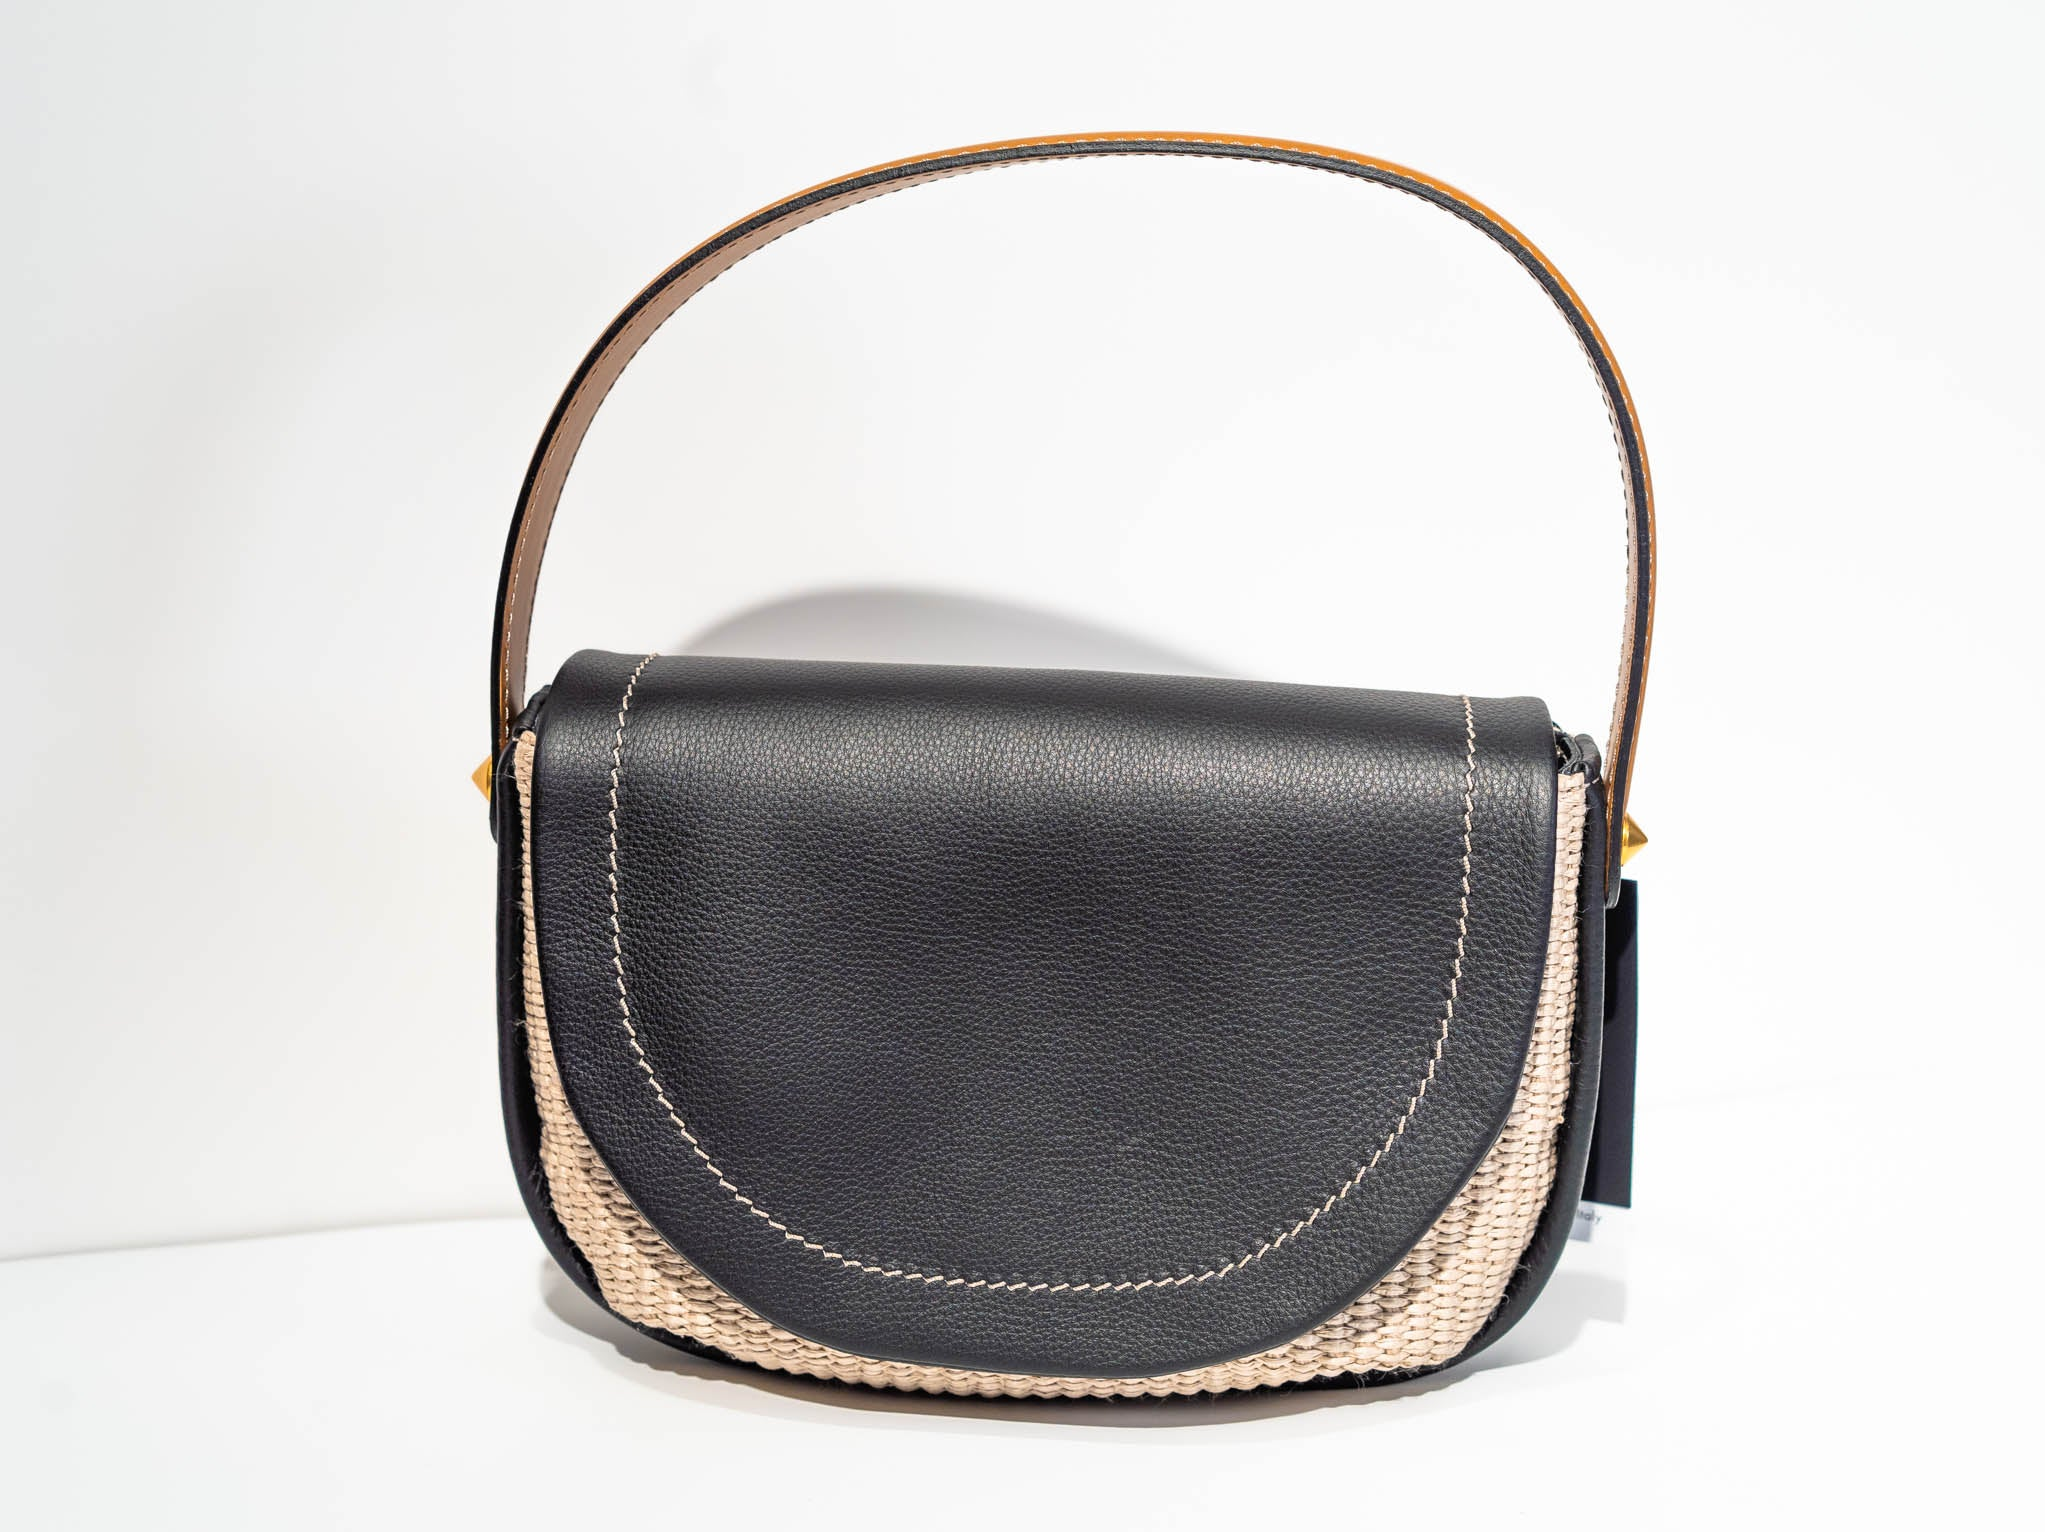 Gianni Chiarini Crossbody